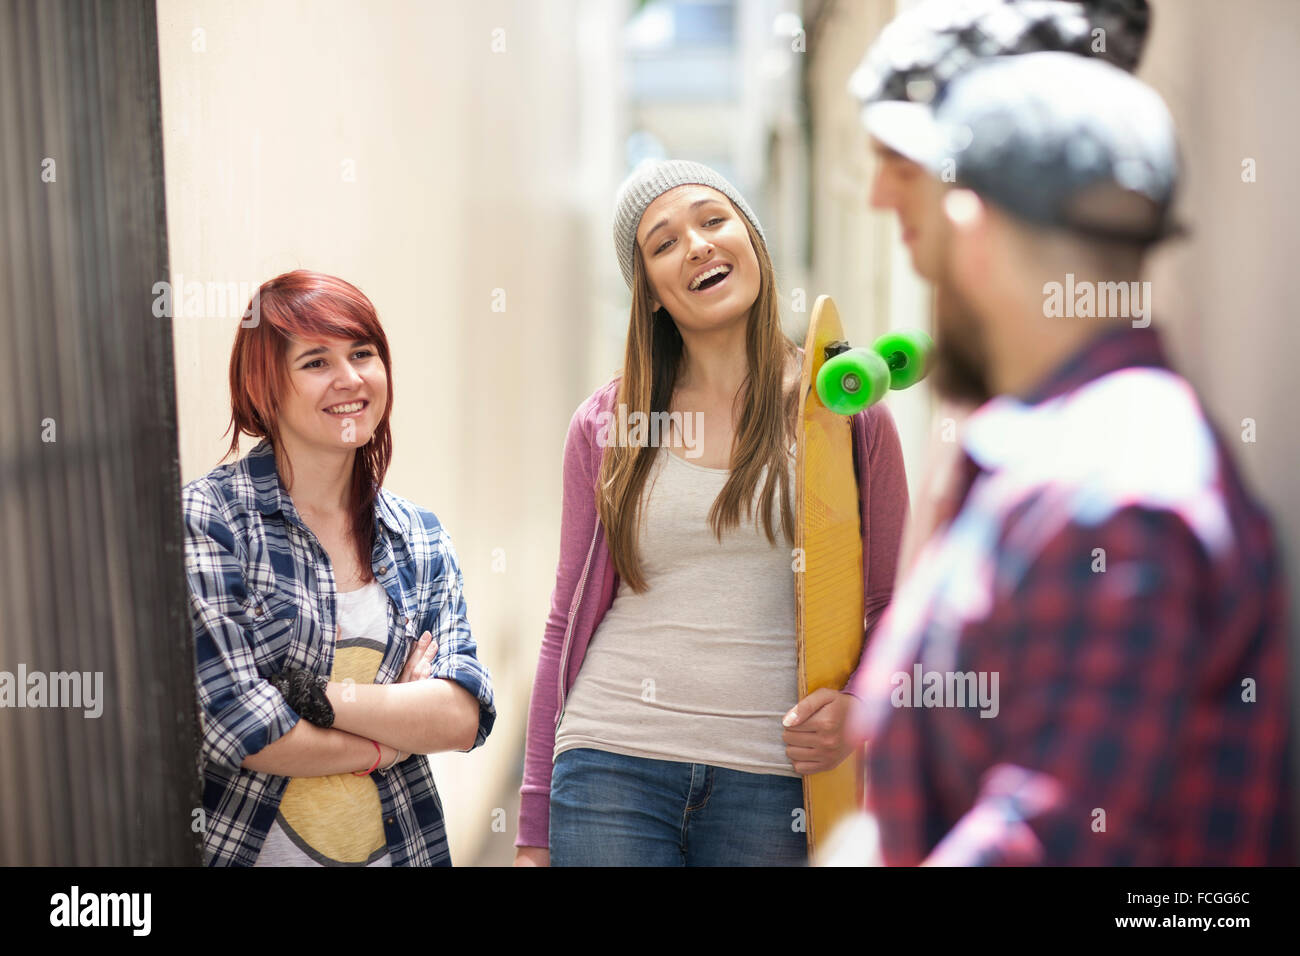 Friends   skateboard talking in a passageway - Stock Image